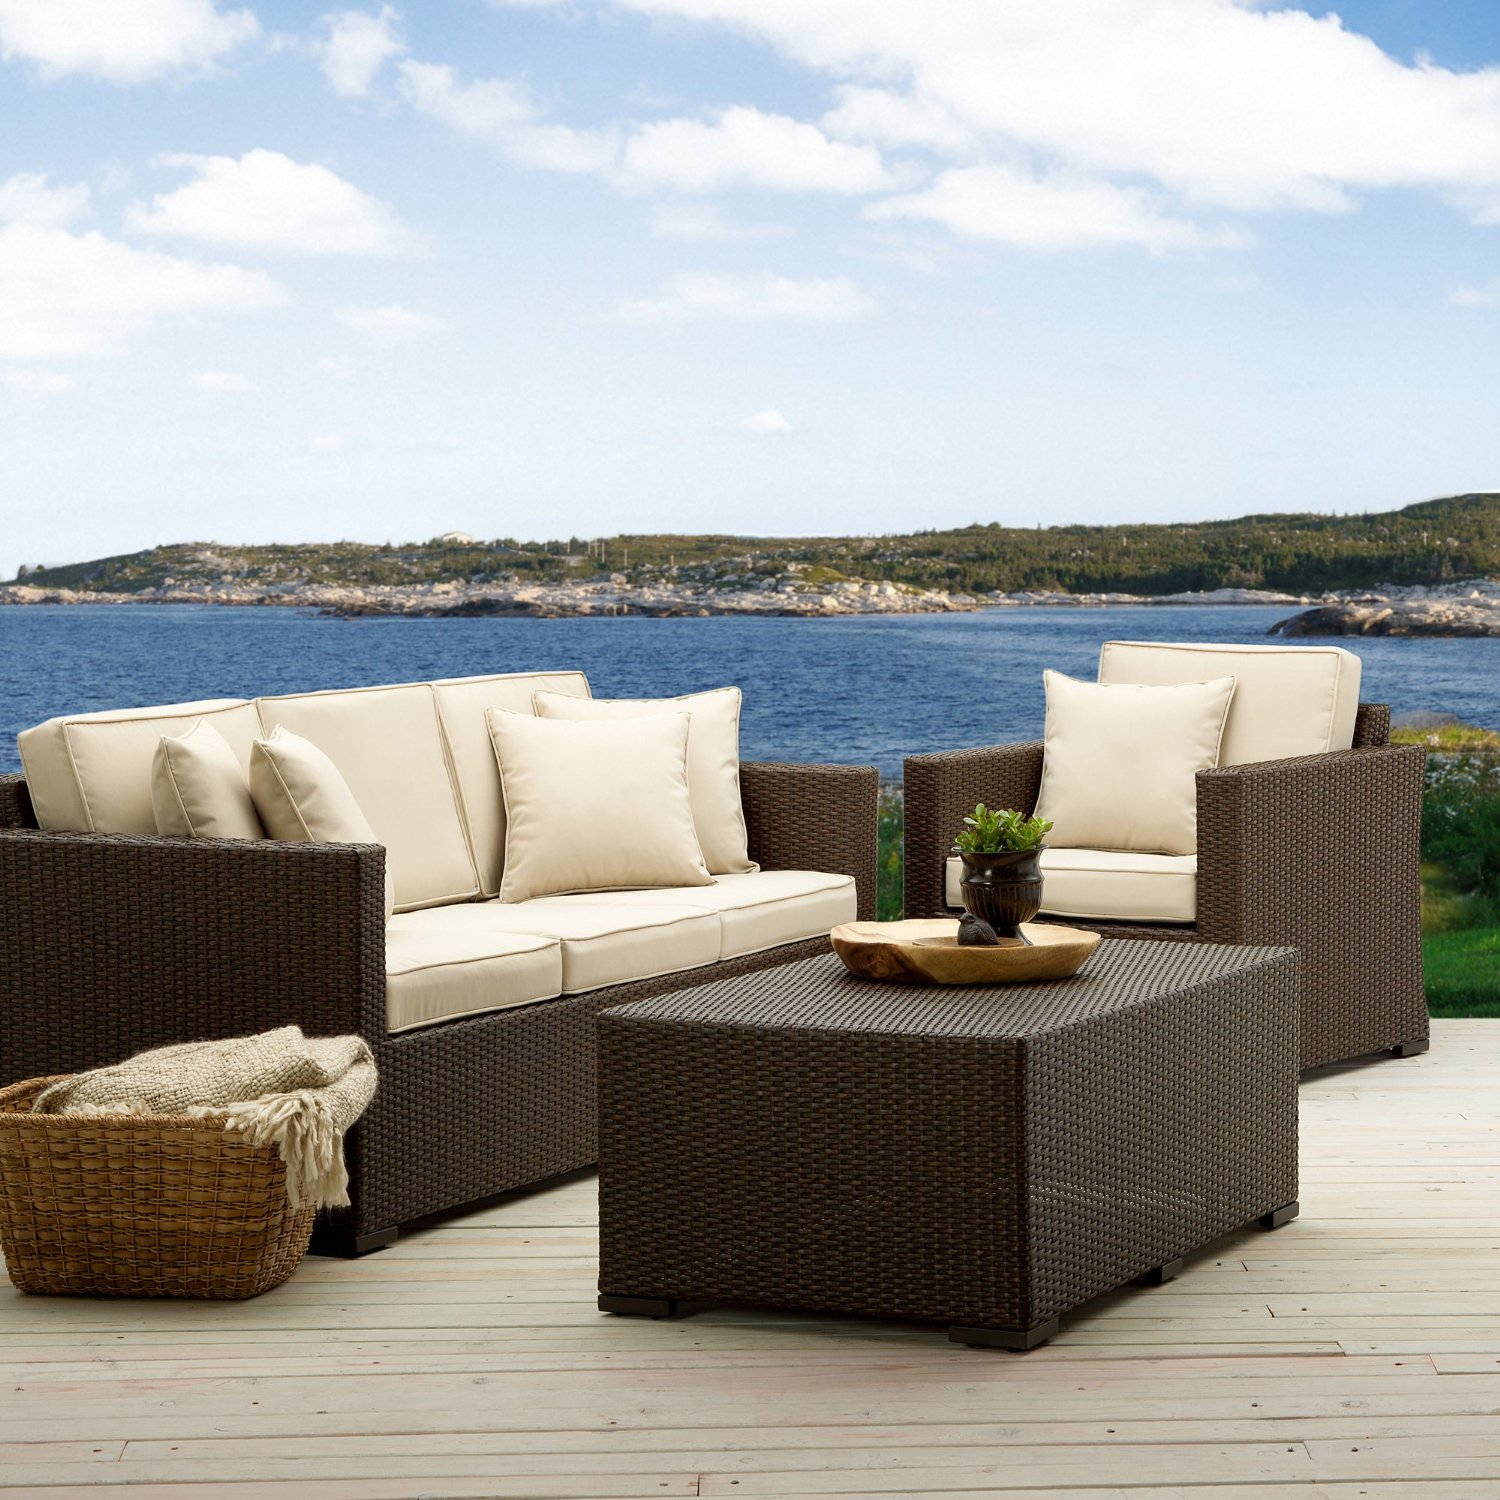 Backyard Patio Furniture : Patio Furniture